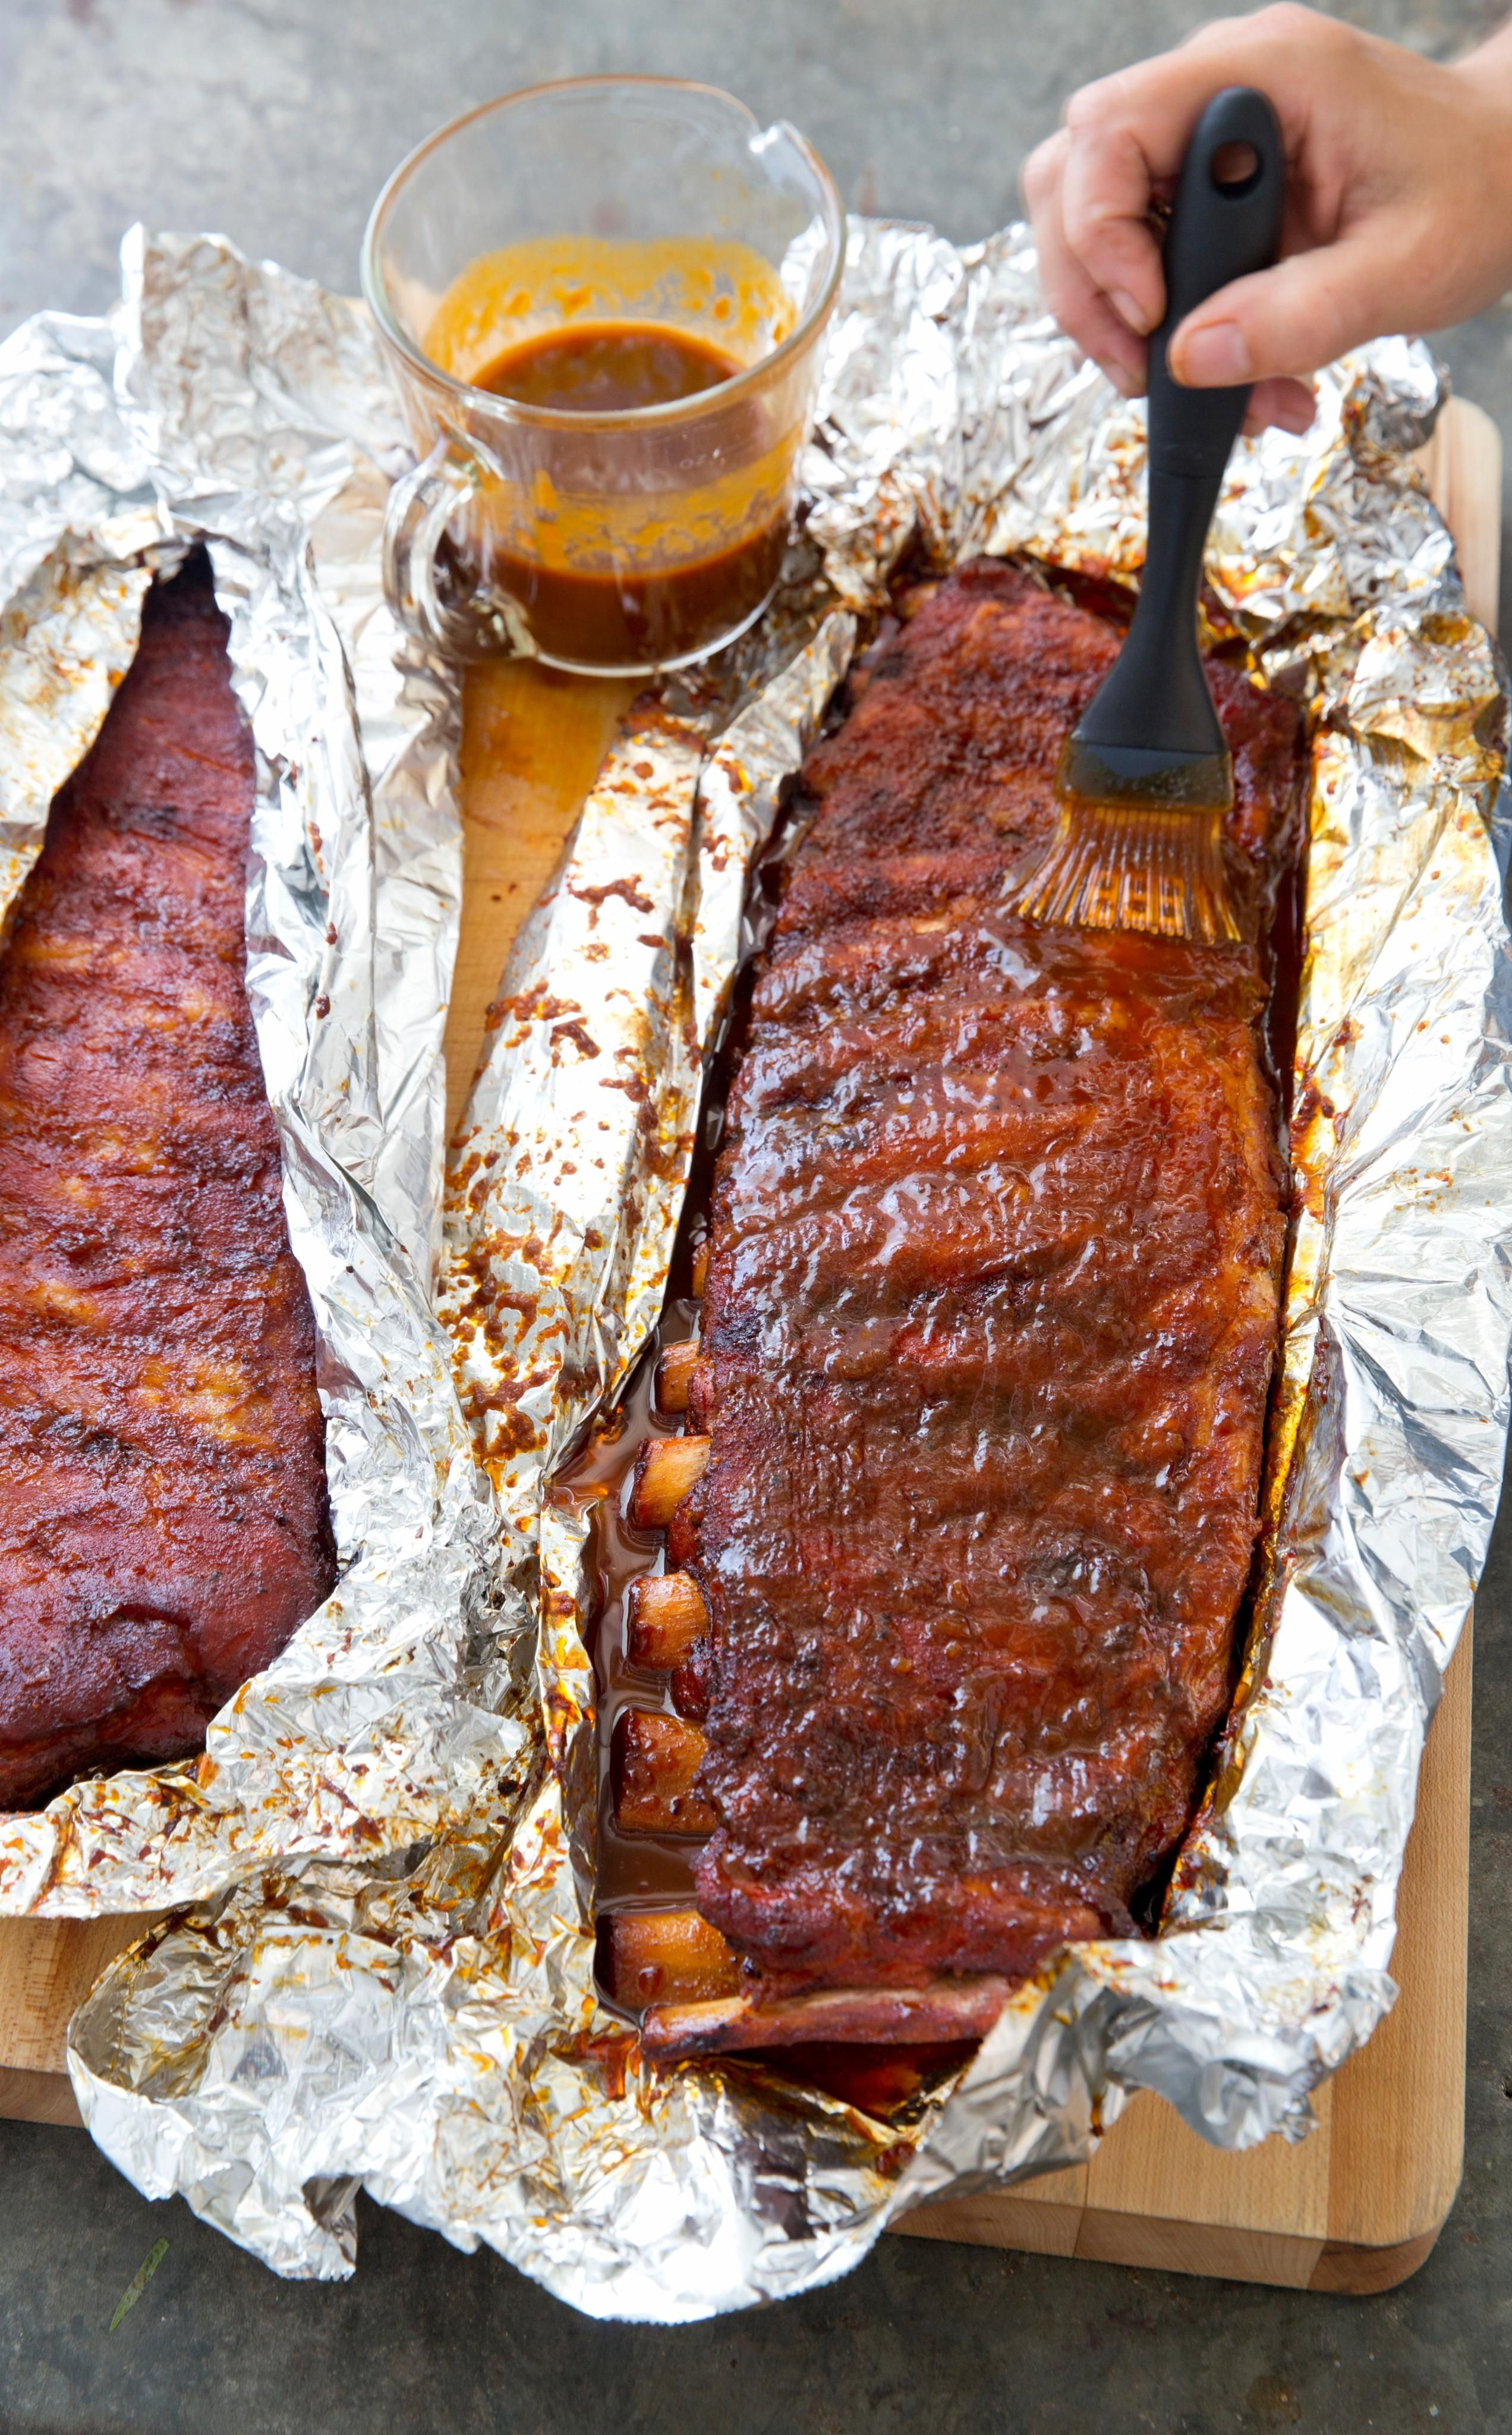 Kansas City Sticky Ribs On A Gas Grill Cook S Country Recipe How To Cook Ribs Ribs On Gas Grill Ribs On Grill